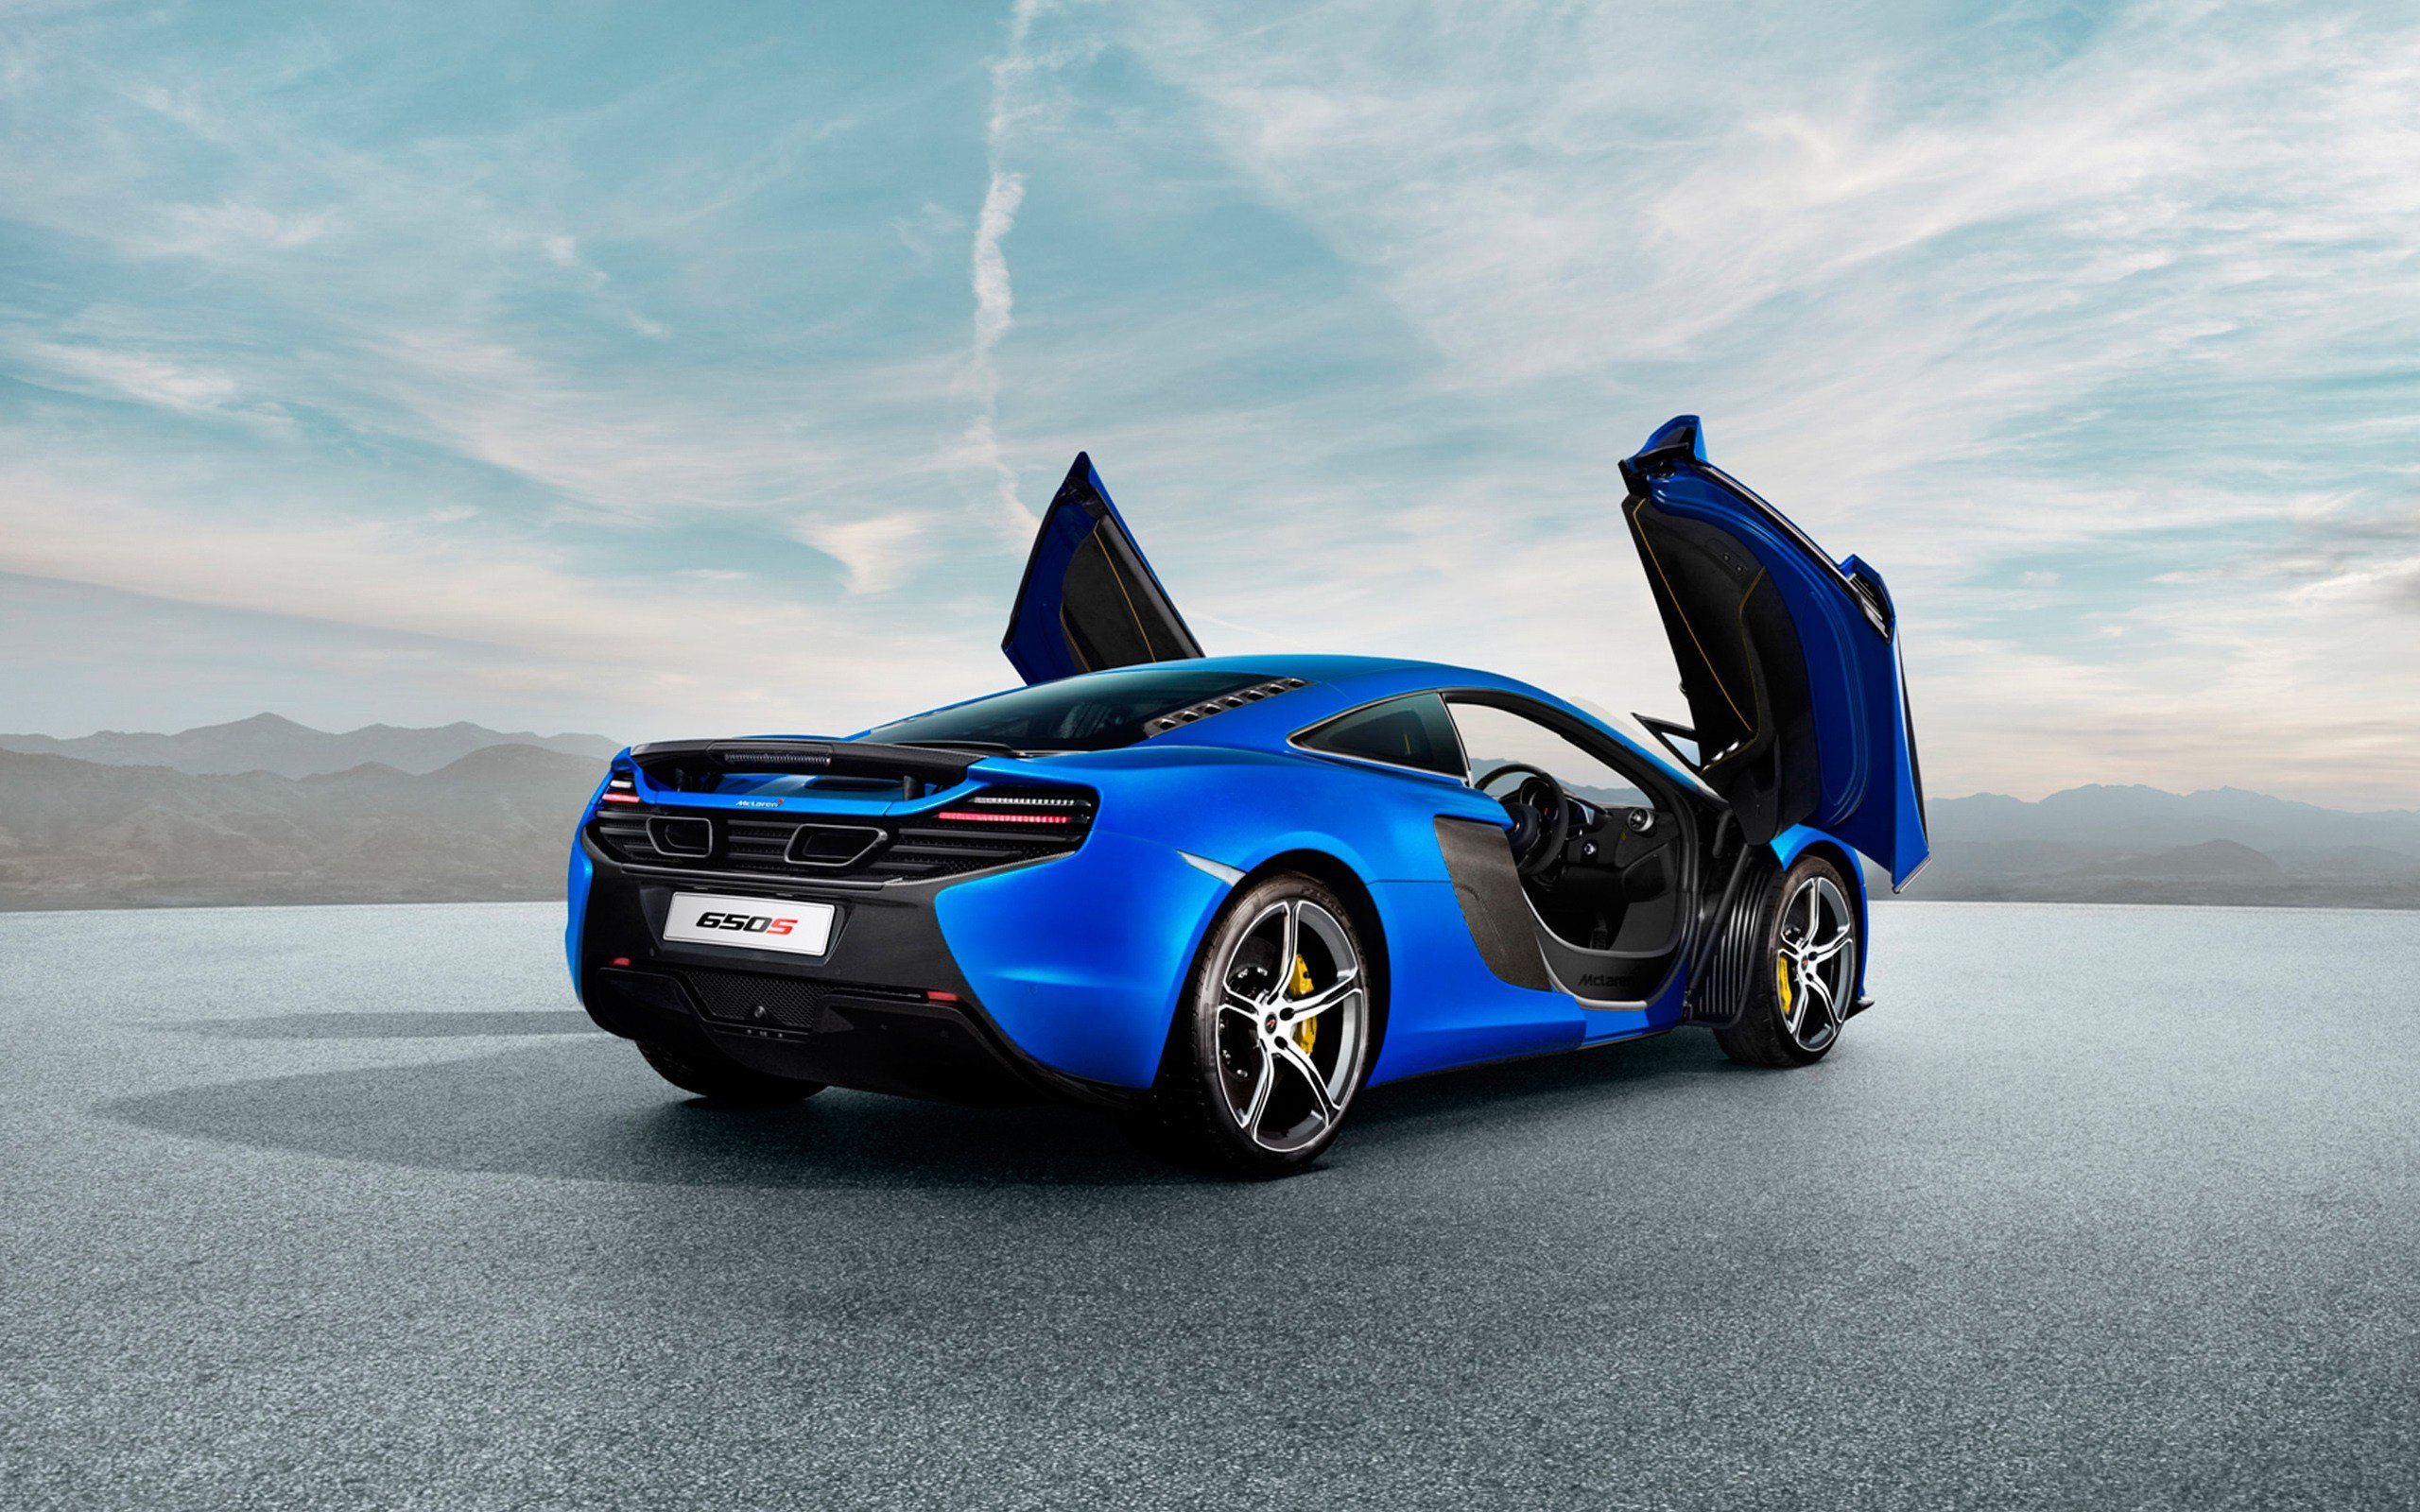 Latest 2015 Mclaren 650S Coupe 3 Wallpaper Hd Car Wallpapers Free Download